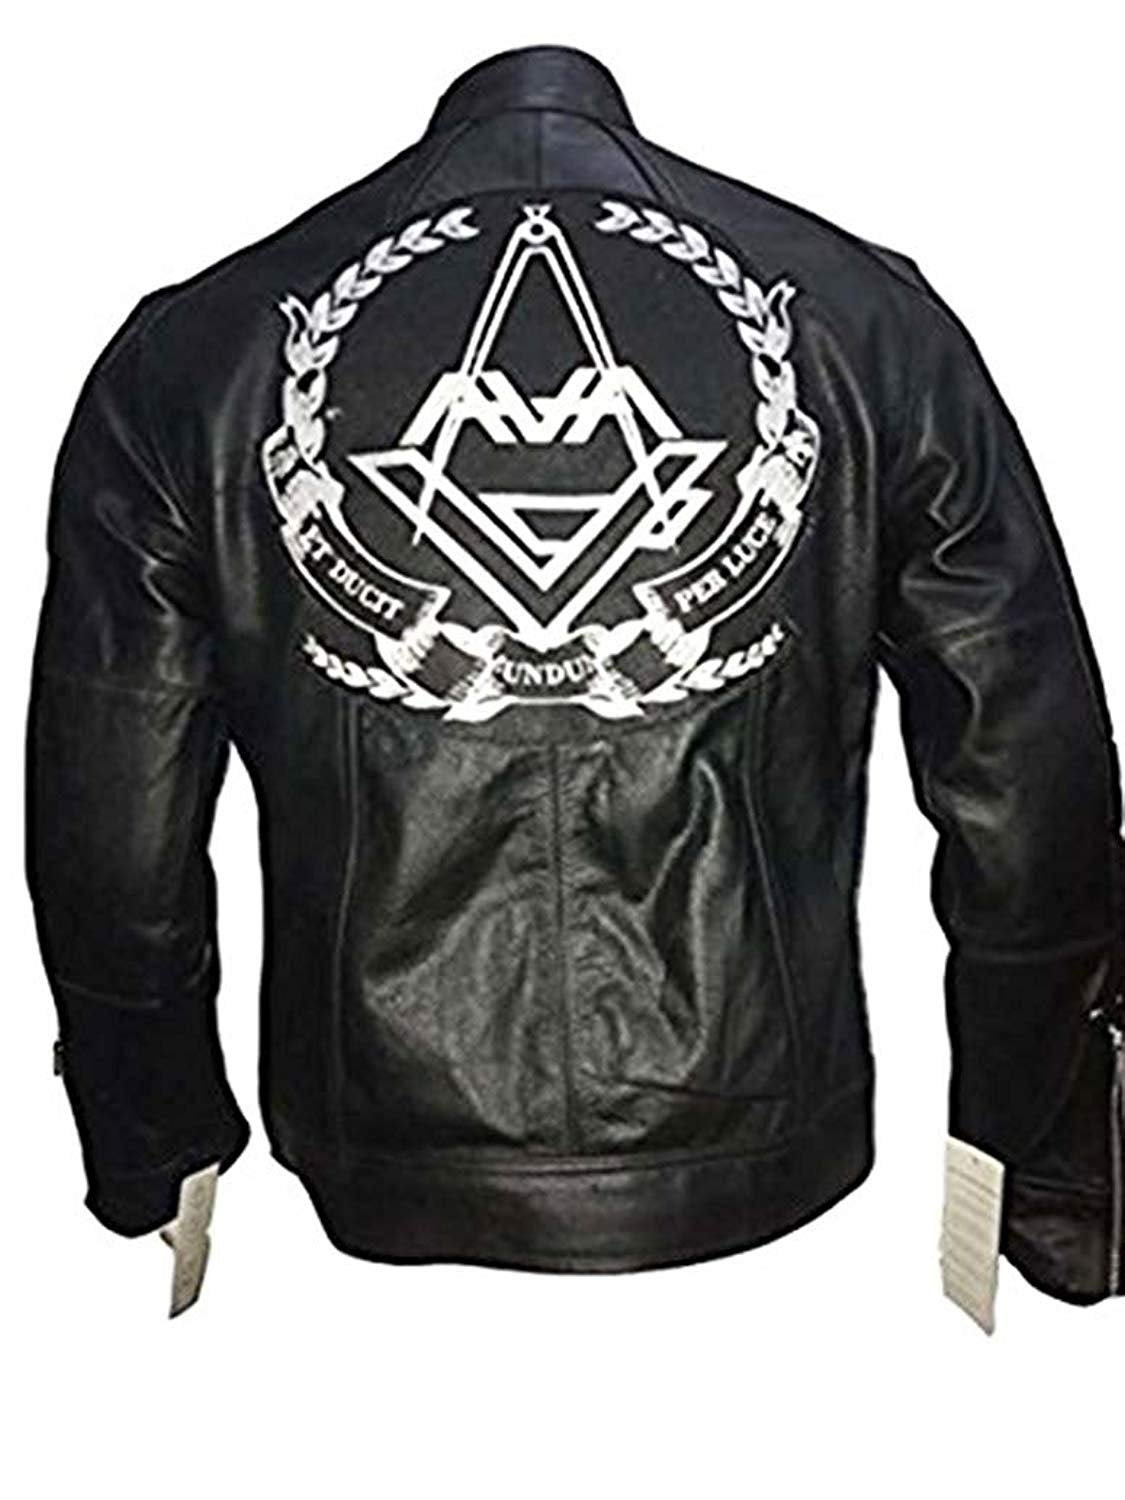 Tom DeLonge Angels and Airwaves Love AVA Vintage Men's Leather Jacket (XXS)